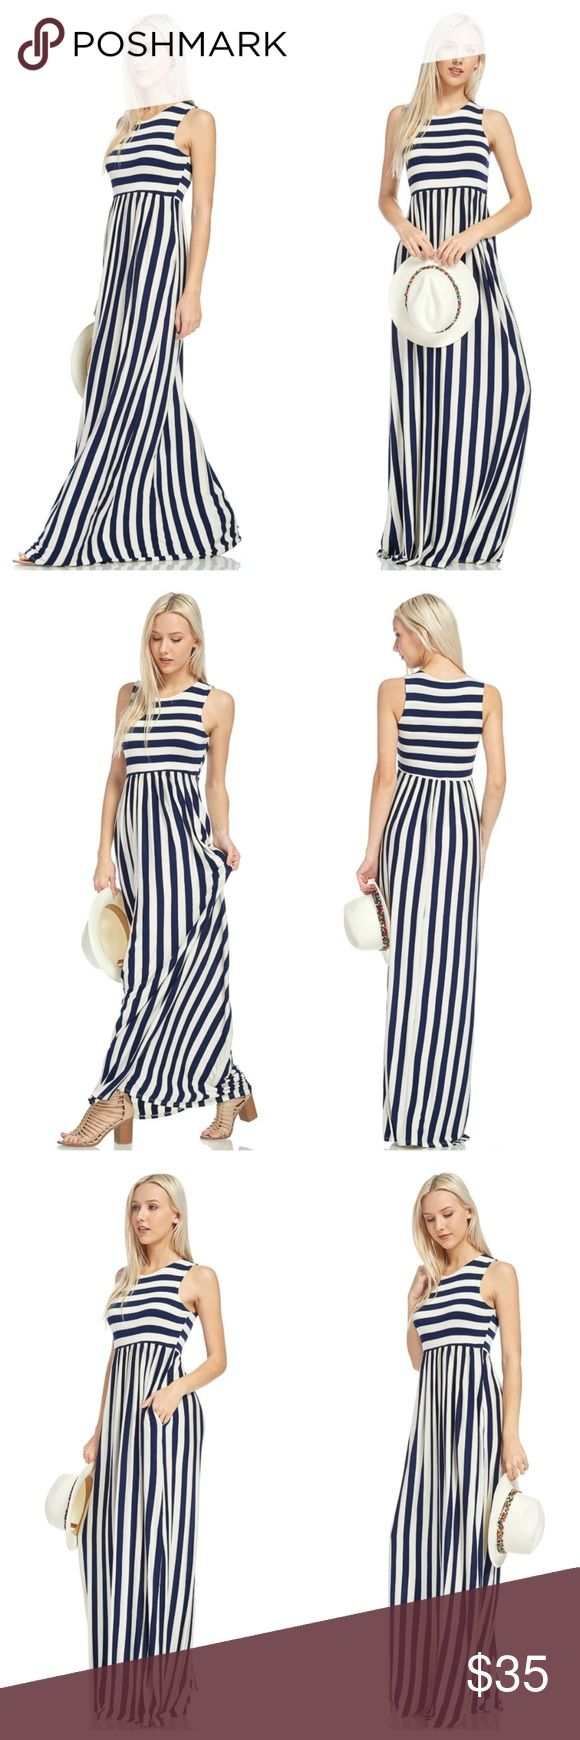 HPNavy And Ivory Striped Sleeveless Maxi Navy and ivory striped sleeveless maxi with side pockets. Bodice is made with two layers of fabric. EVIEcarche Dresses